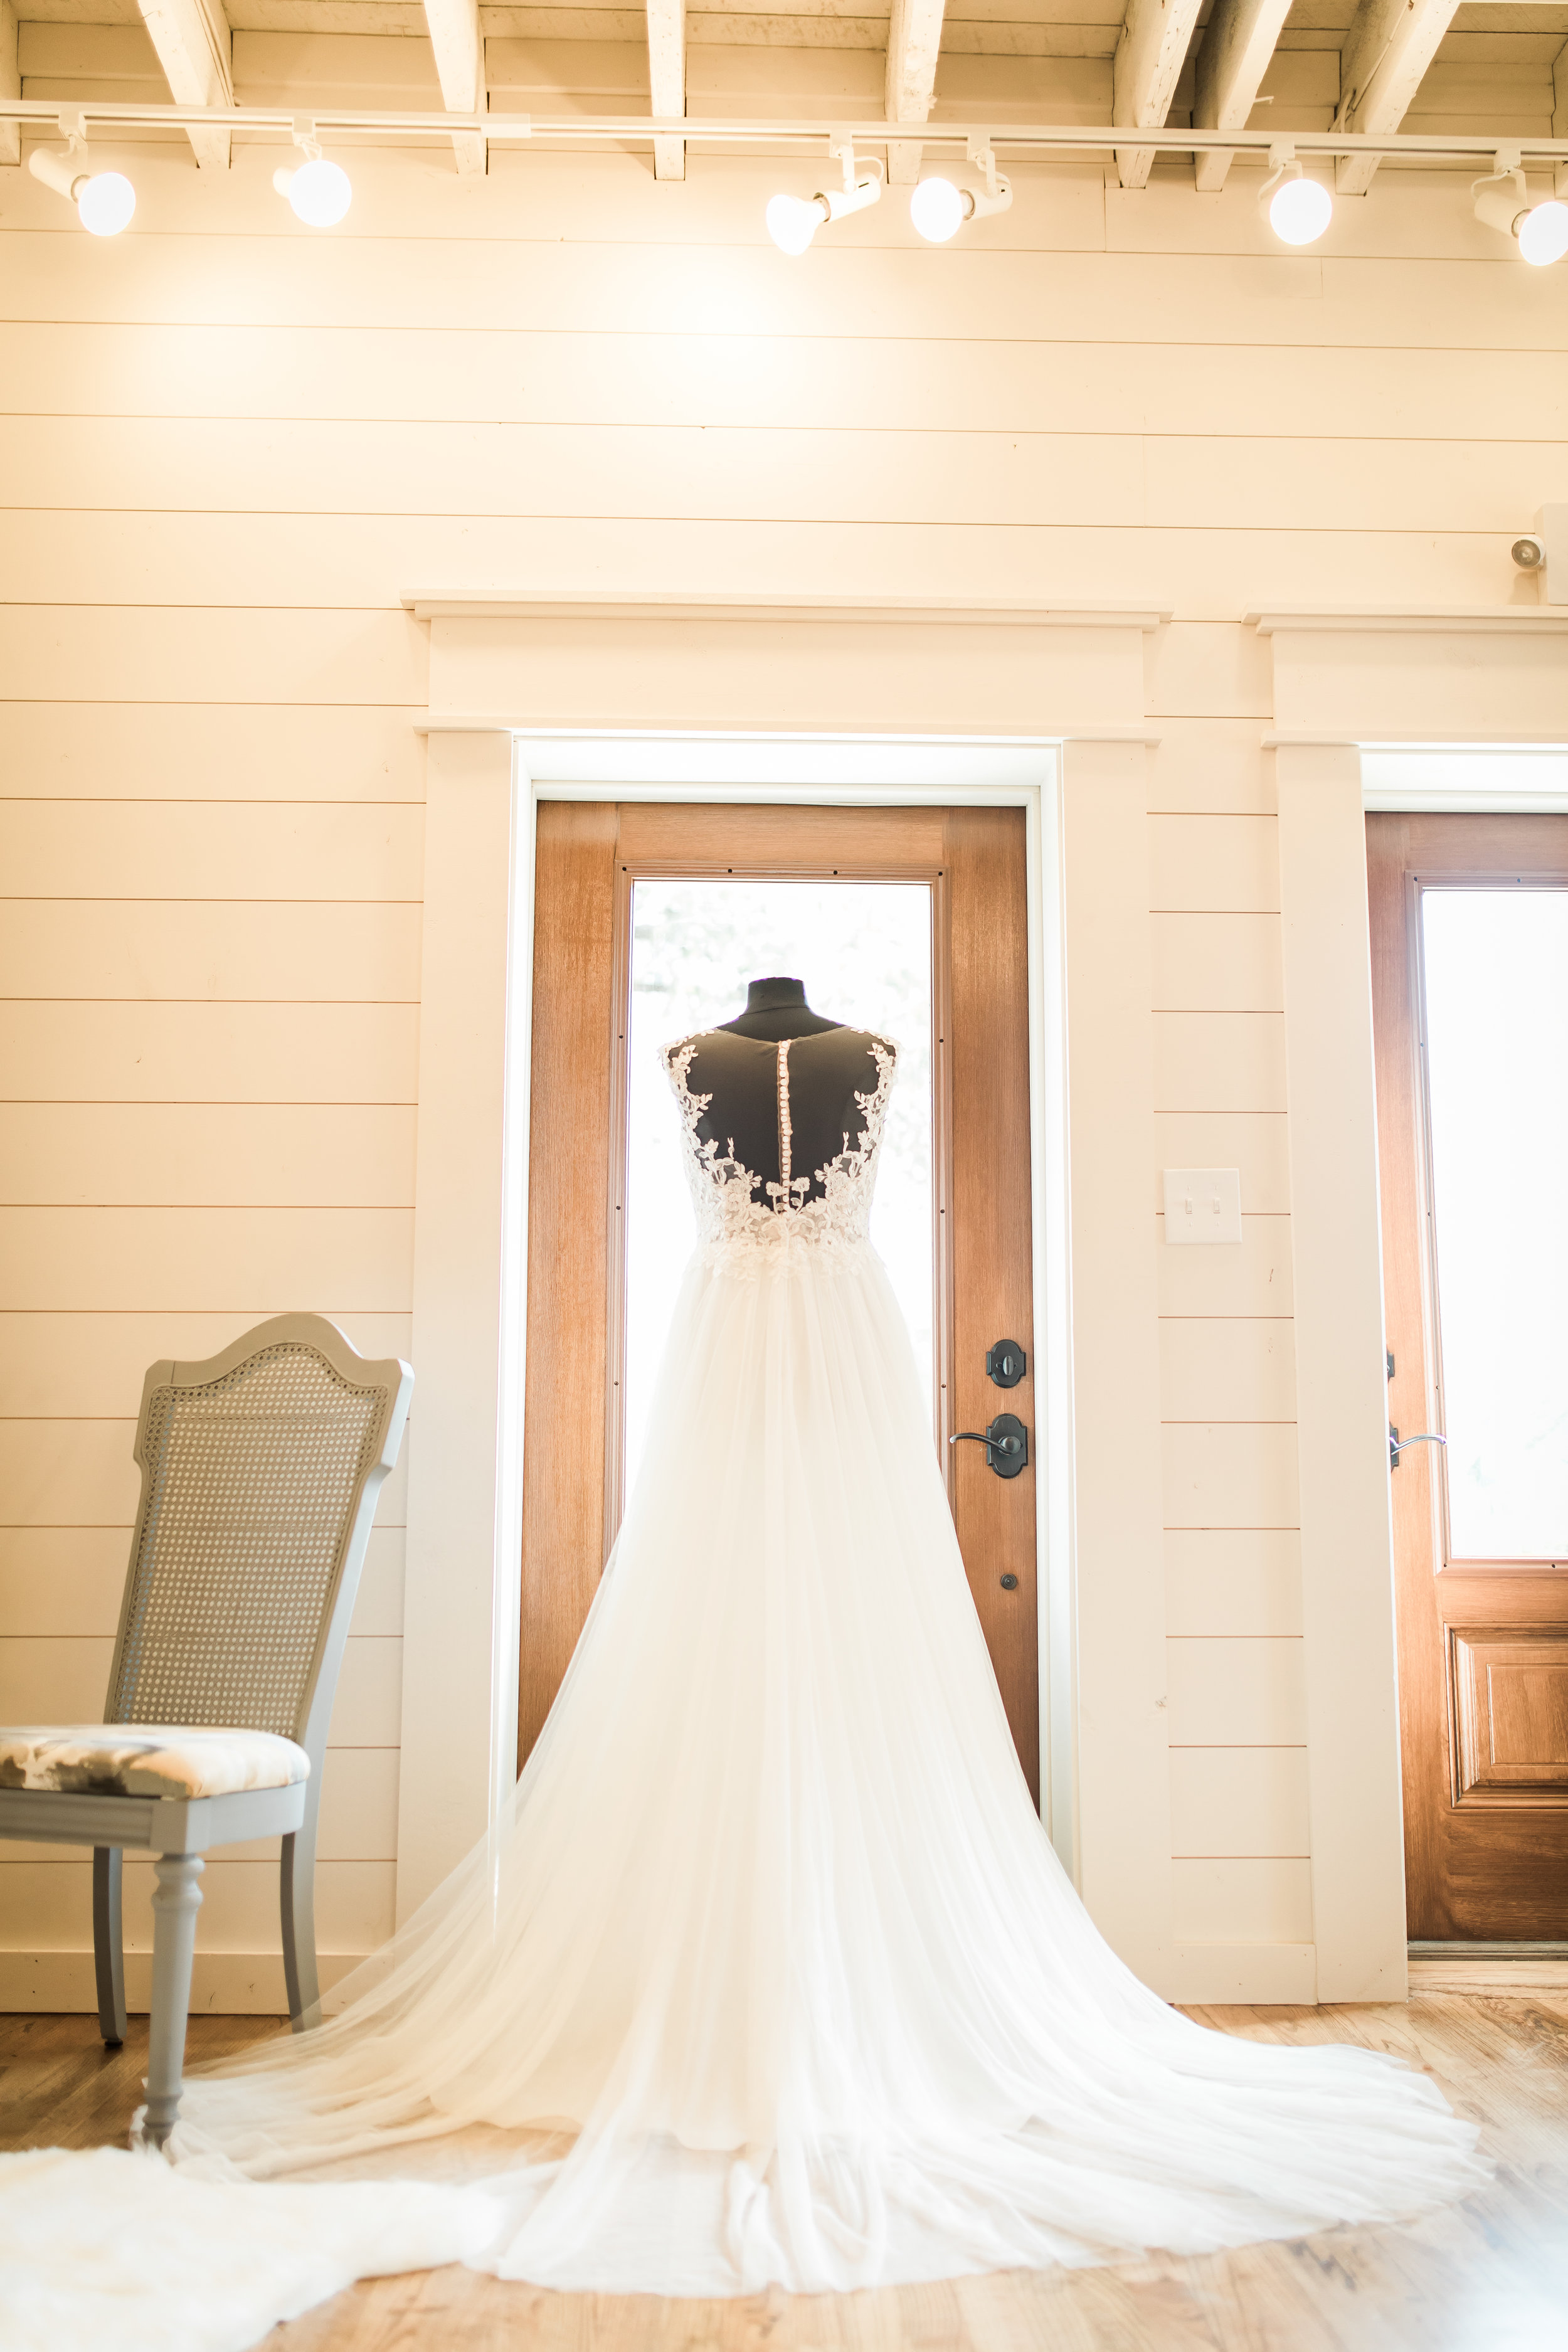 Cleo Bridal   White Traditions Sister-Store  O'Fallon, MO  Bridal Shop  Allison Slater Photography52.jpg